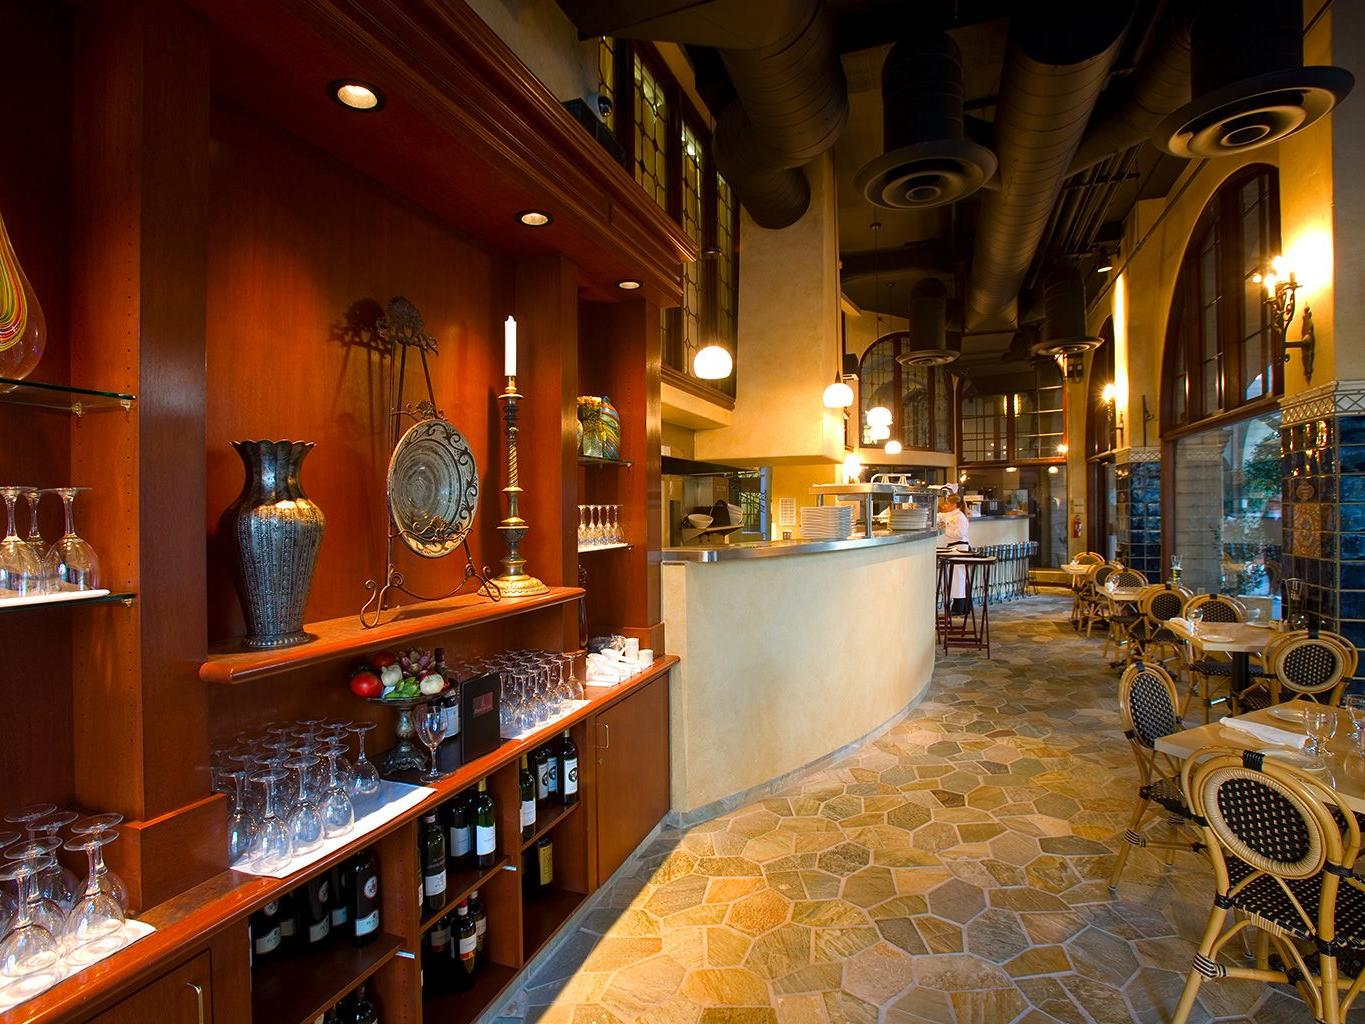 walkway in restaurant with tables and wine on shelves